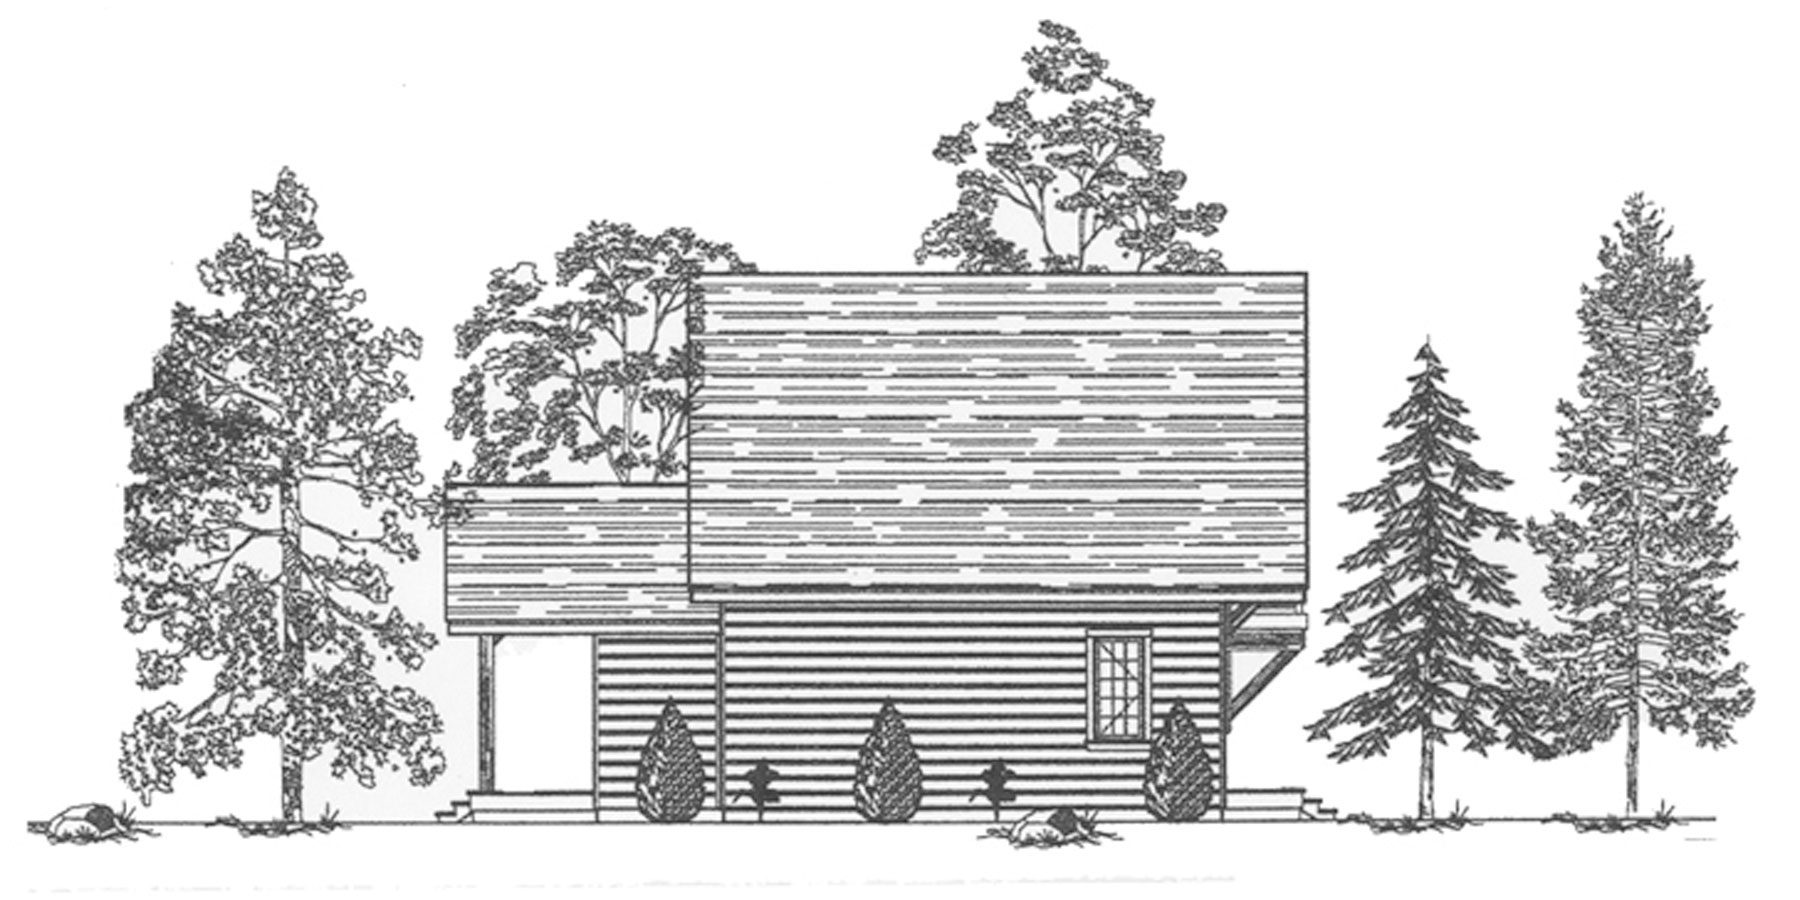 Normerica Timber Frames, House Plan, The Jackson 3605, Left Elevation